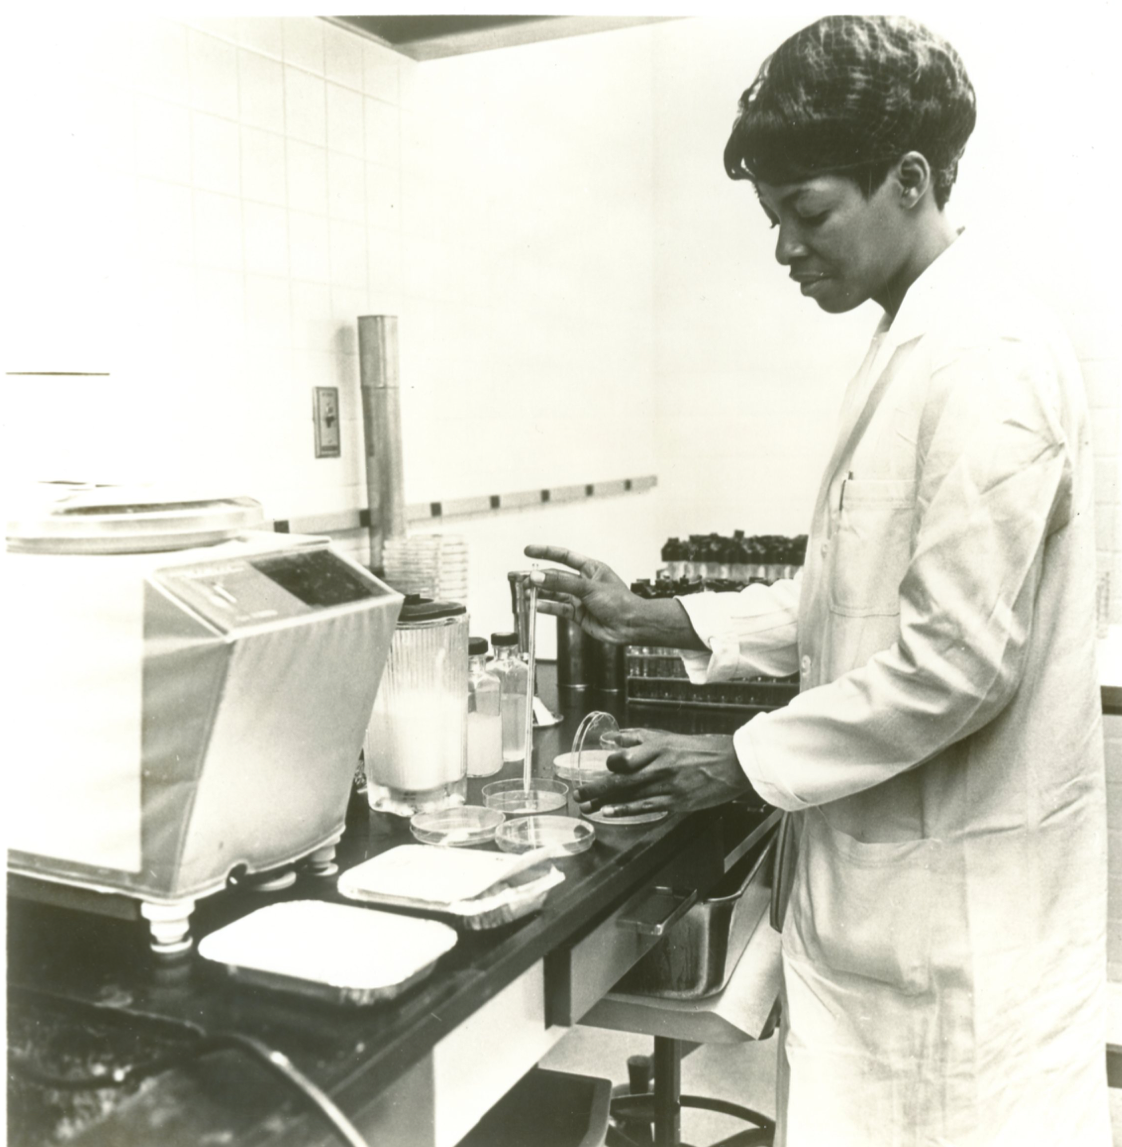 Sara Thompson, Stouffer's quality control supervisor during the Apollo 11 mission. Isolation/Quarantine Foods for Apollo 11 Astronauts from Stouffer's Press Materials.